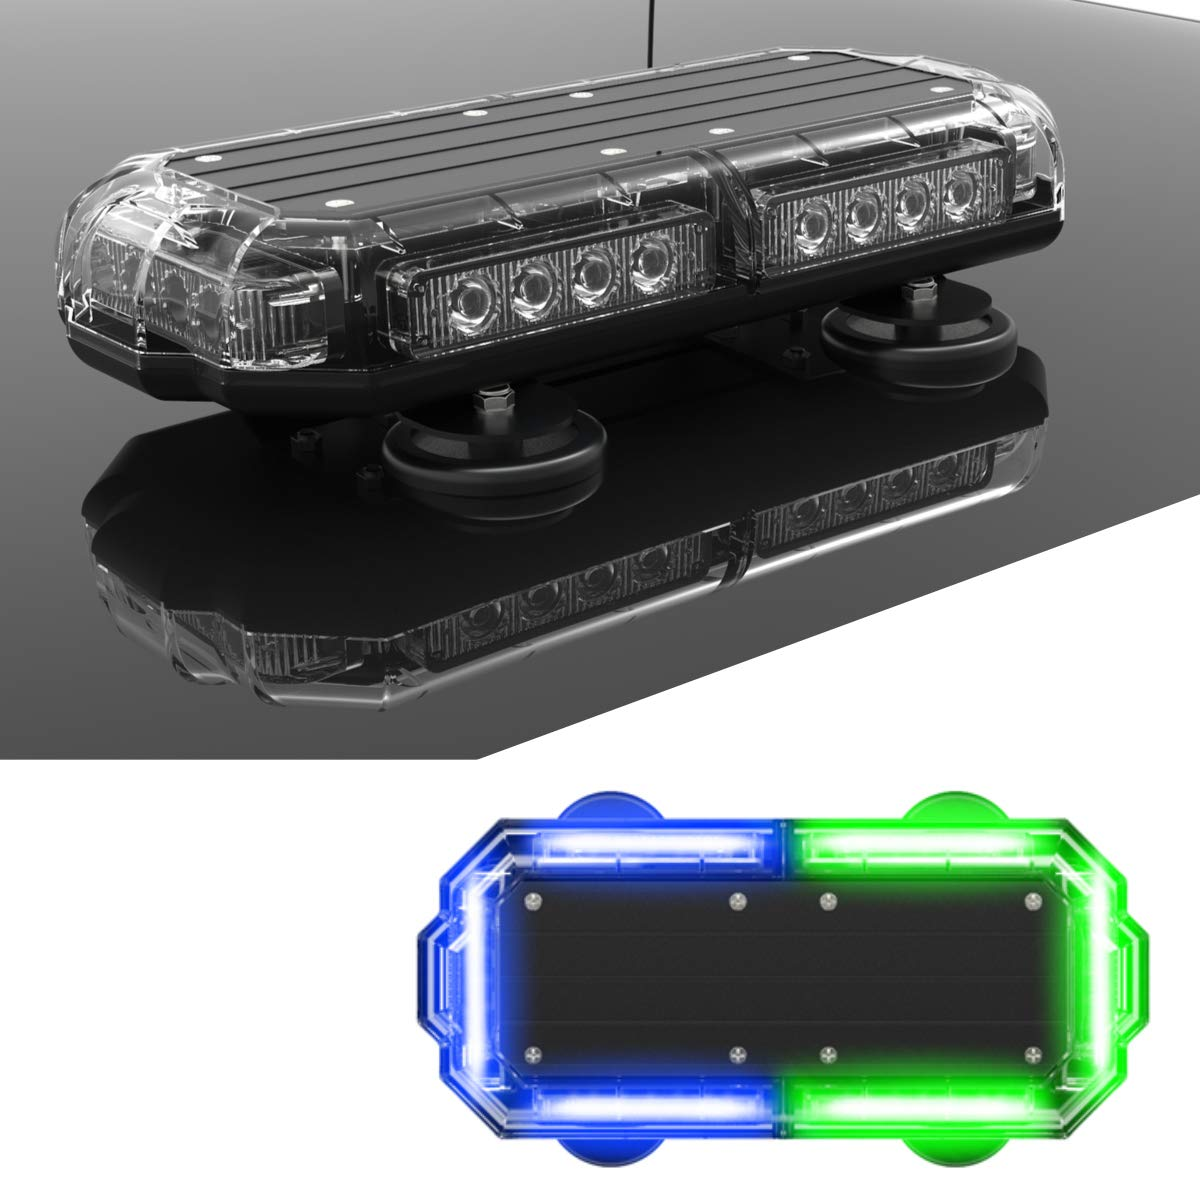 Cars and Emergency Vehicles with Magnetic Roof Mount in Alternating Red//Blue SpeedTech Lights Mini 14 72 Watts LED Strobe Lights for Trucks Plows